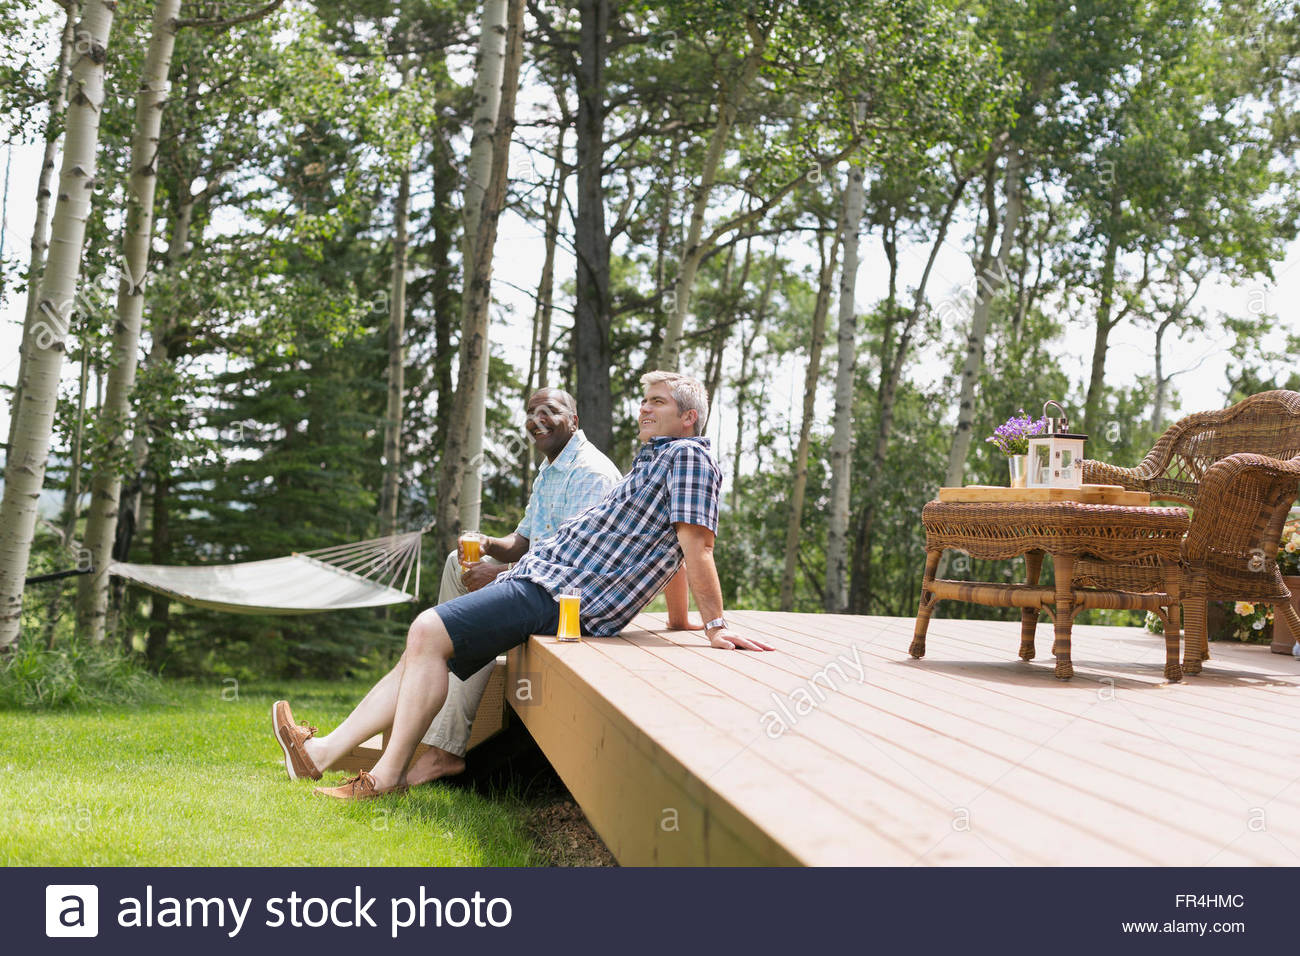 men enjoying beverages on an outdoor deck - Stock Image